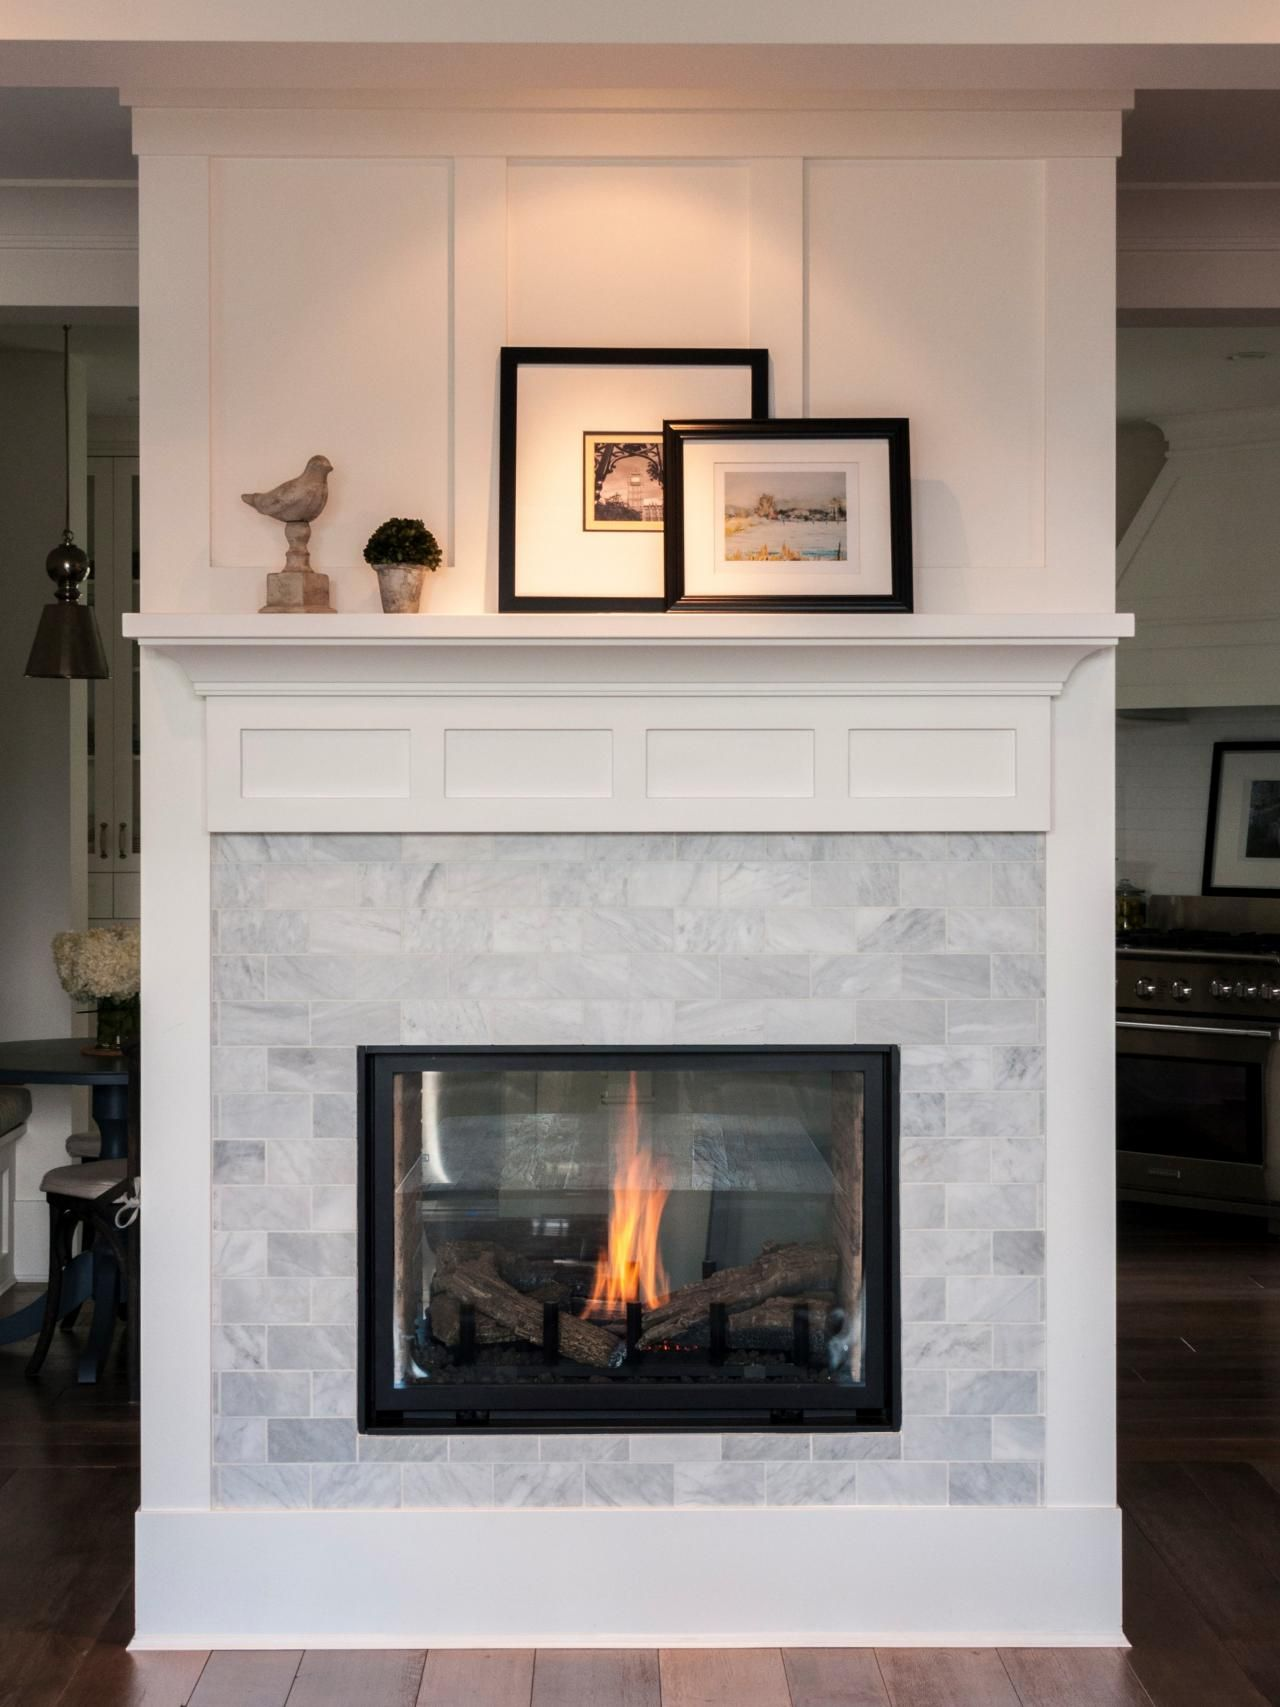 Freestanding Double Sided Marble Fireplace Hgtv Home Fireplace Fireplace Remodel Fireplace Design